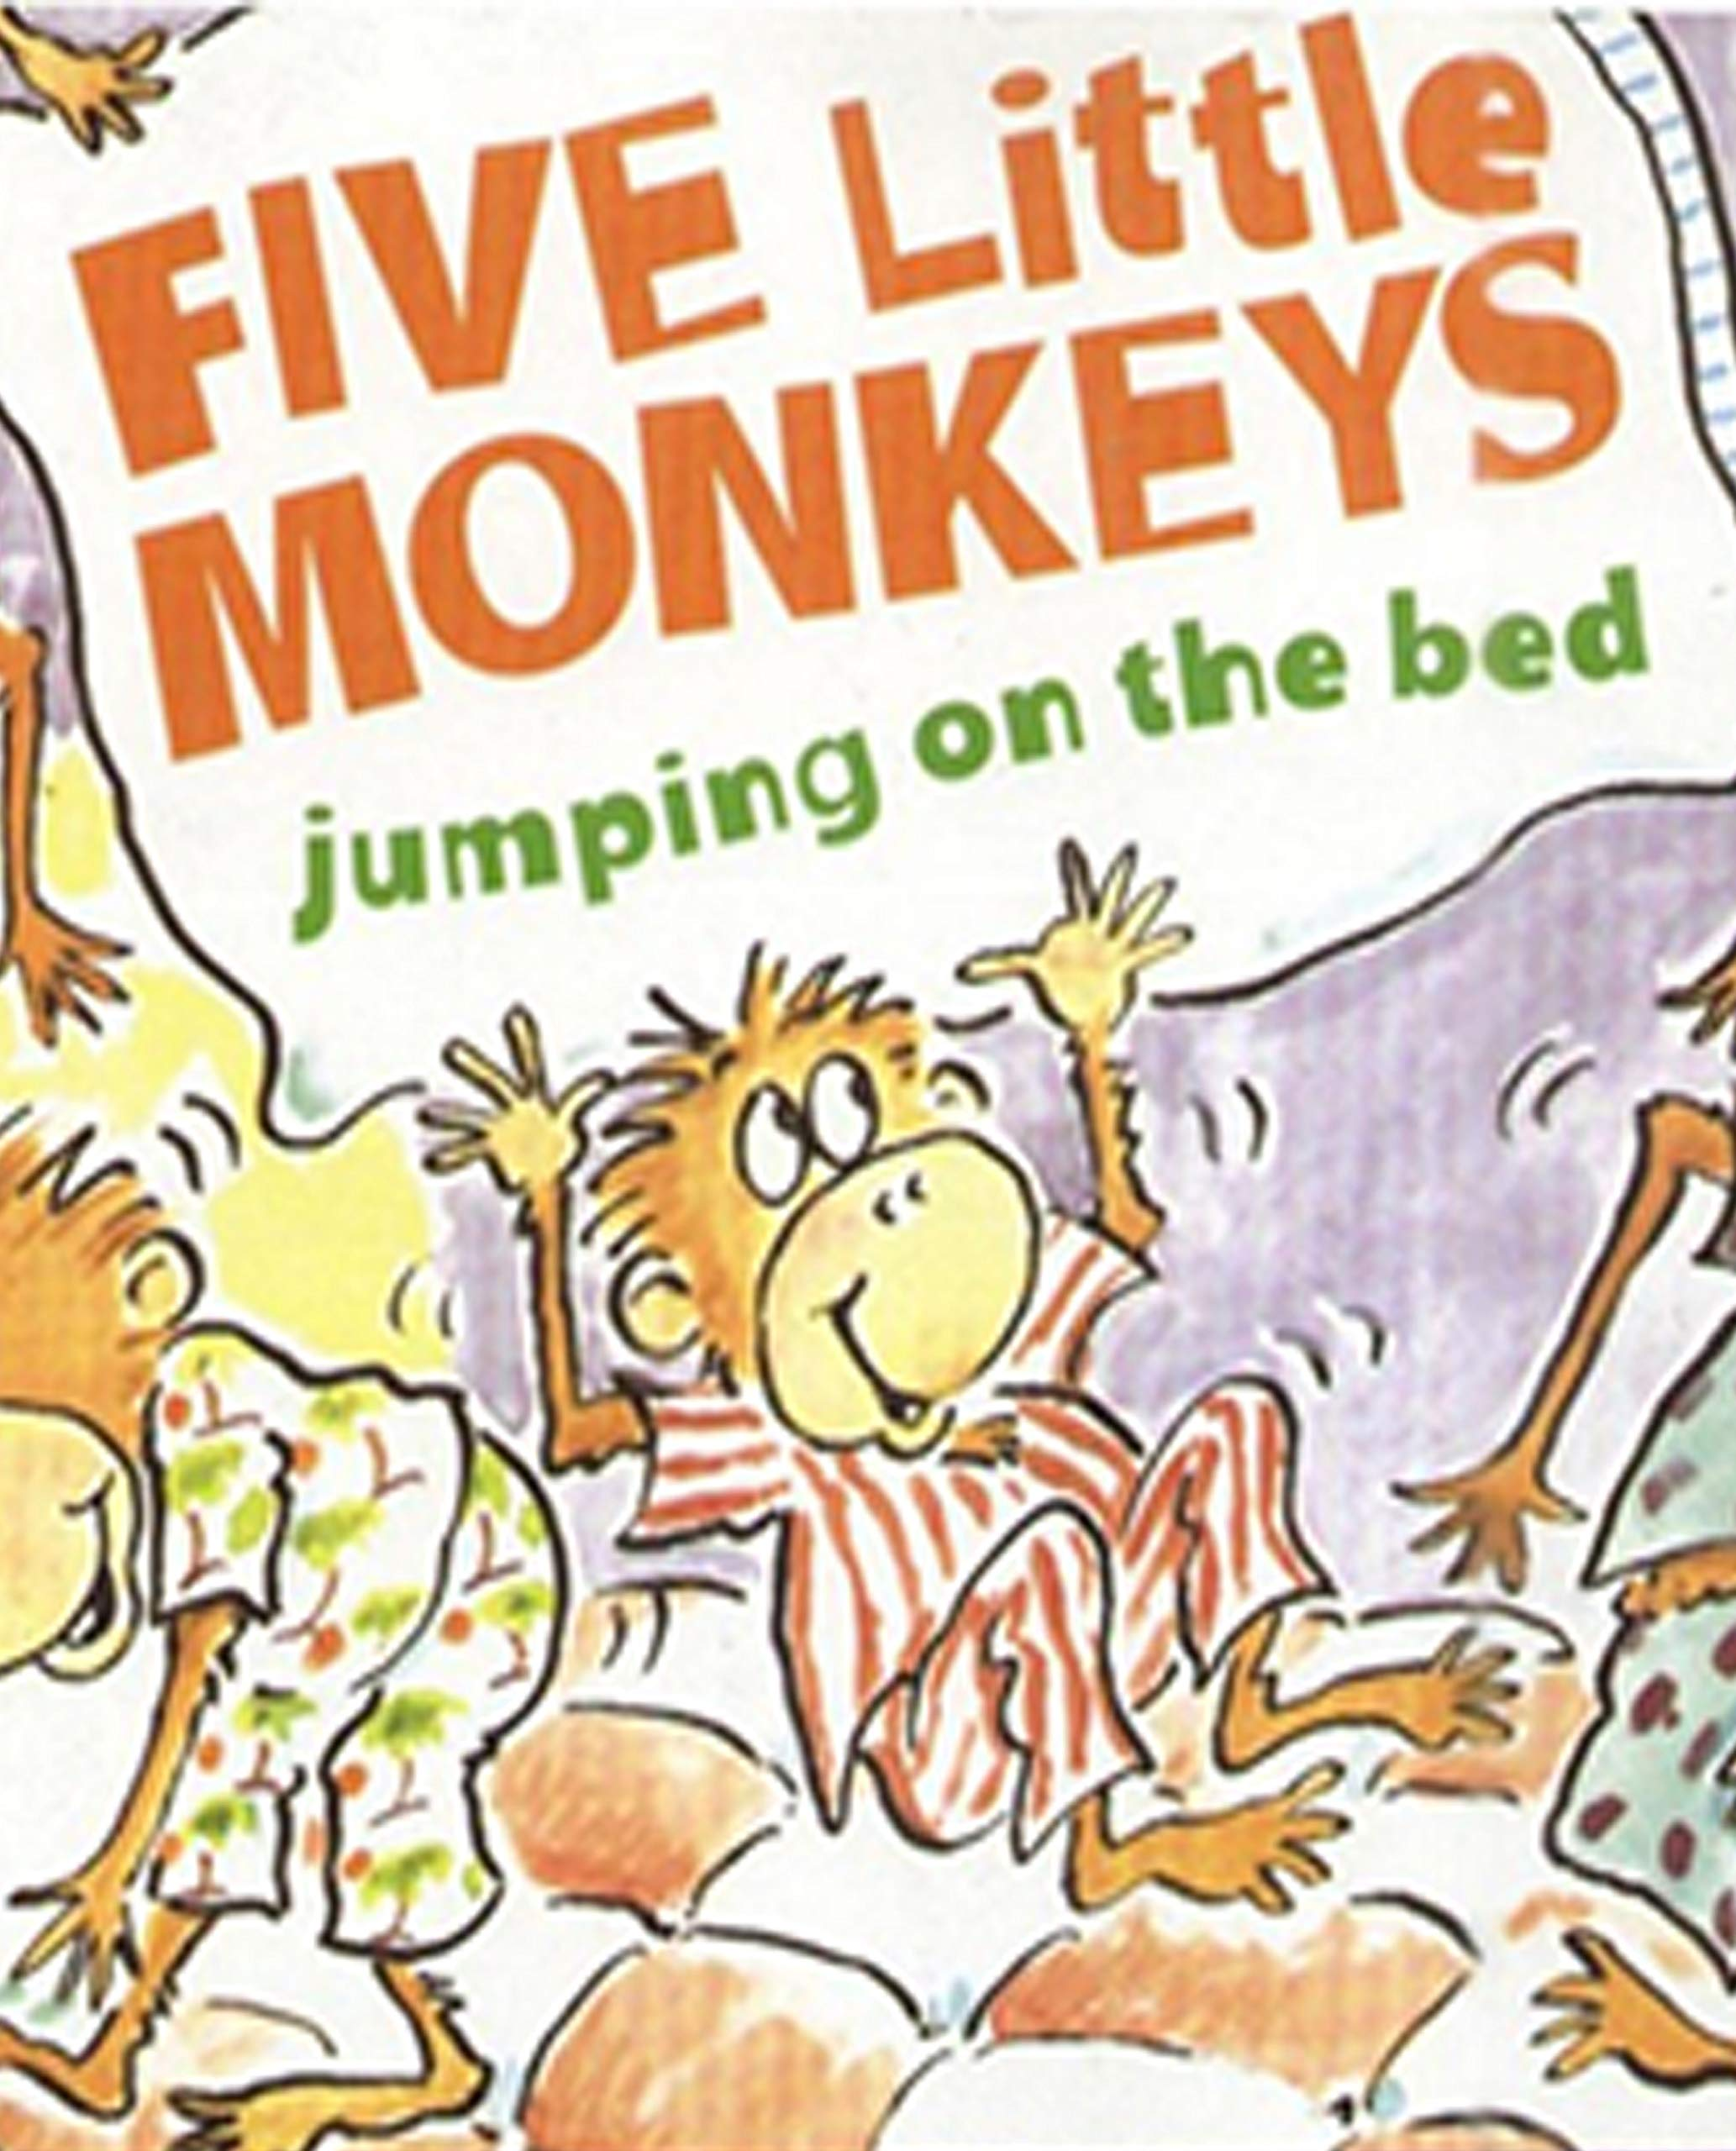 Five Little Monkeys Jumping on the Bed: Recommended for classic children's picture books